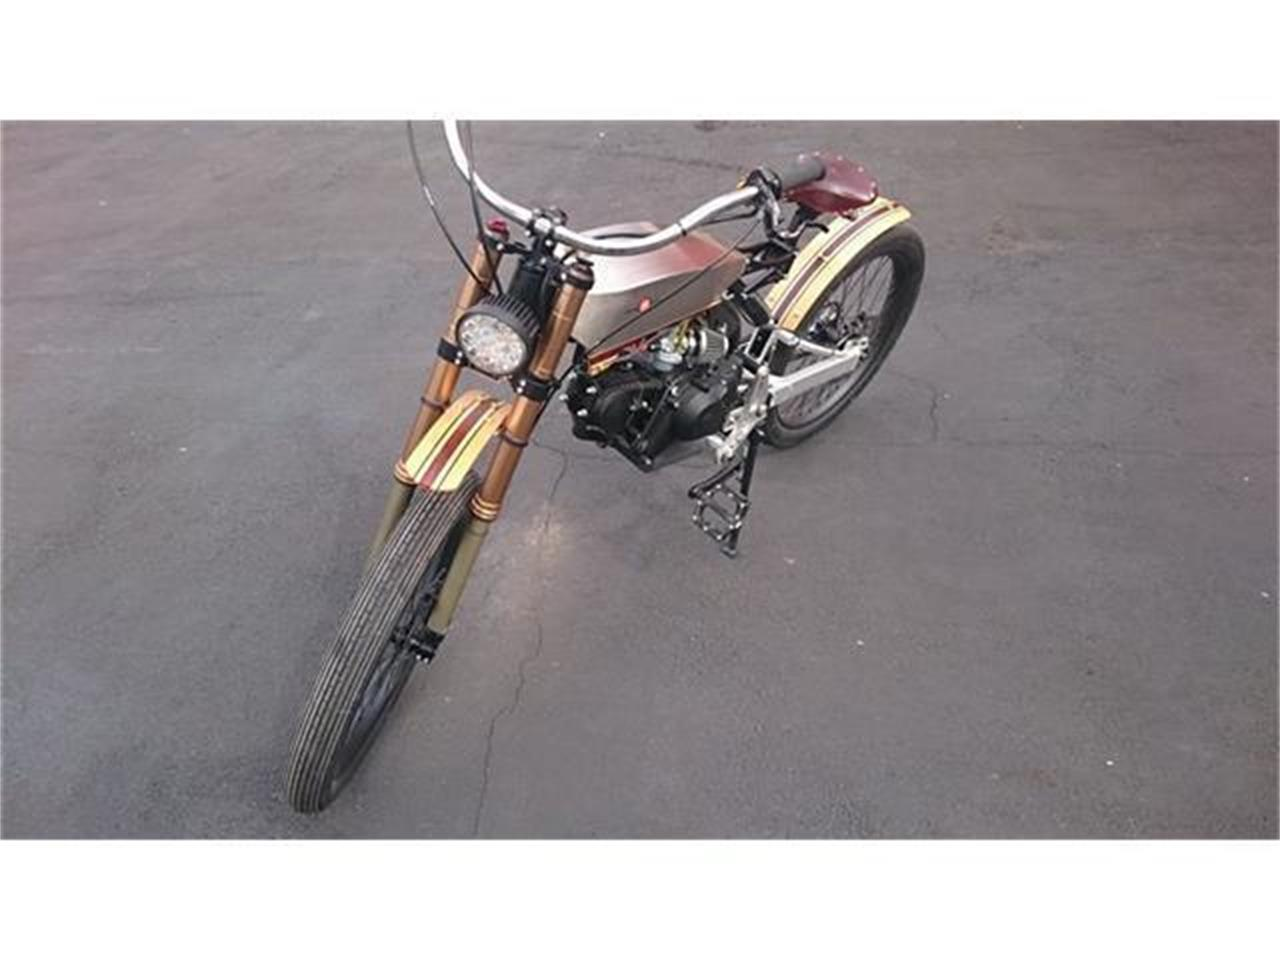 Large Picture of '15 49ccHybrid Motorcycle located in Los Angeles California - $3,600.00 Offered by Sassy Motorsports Inc. - IYTH